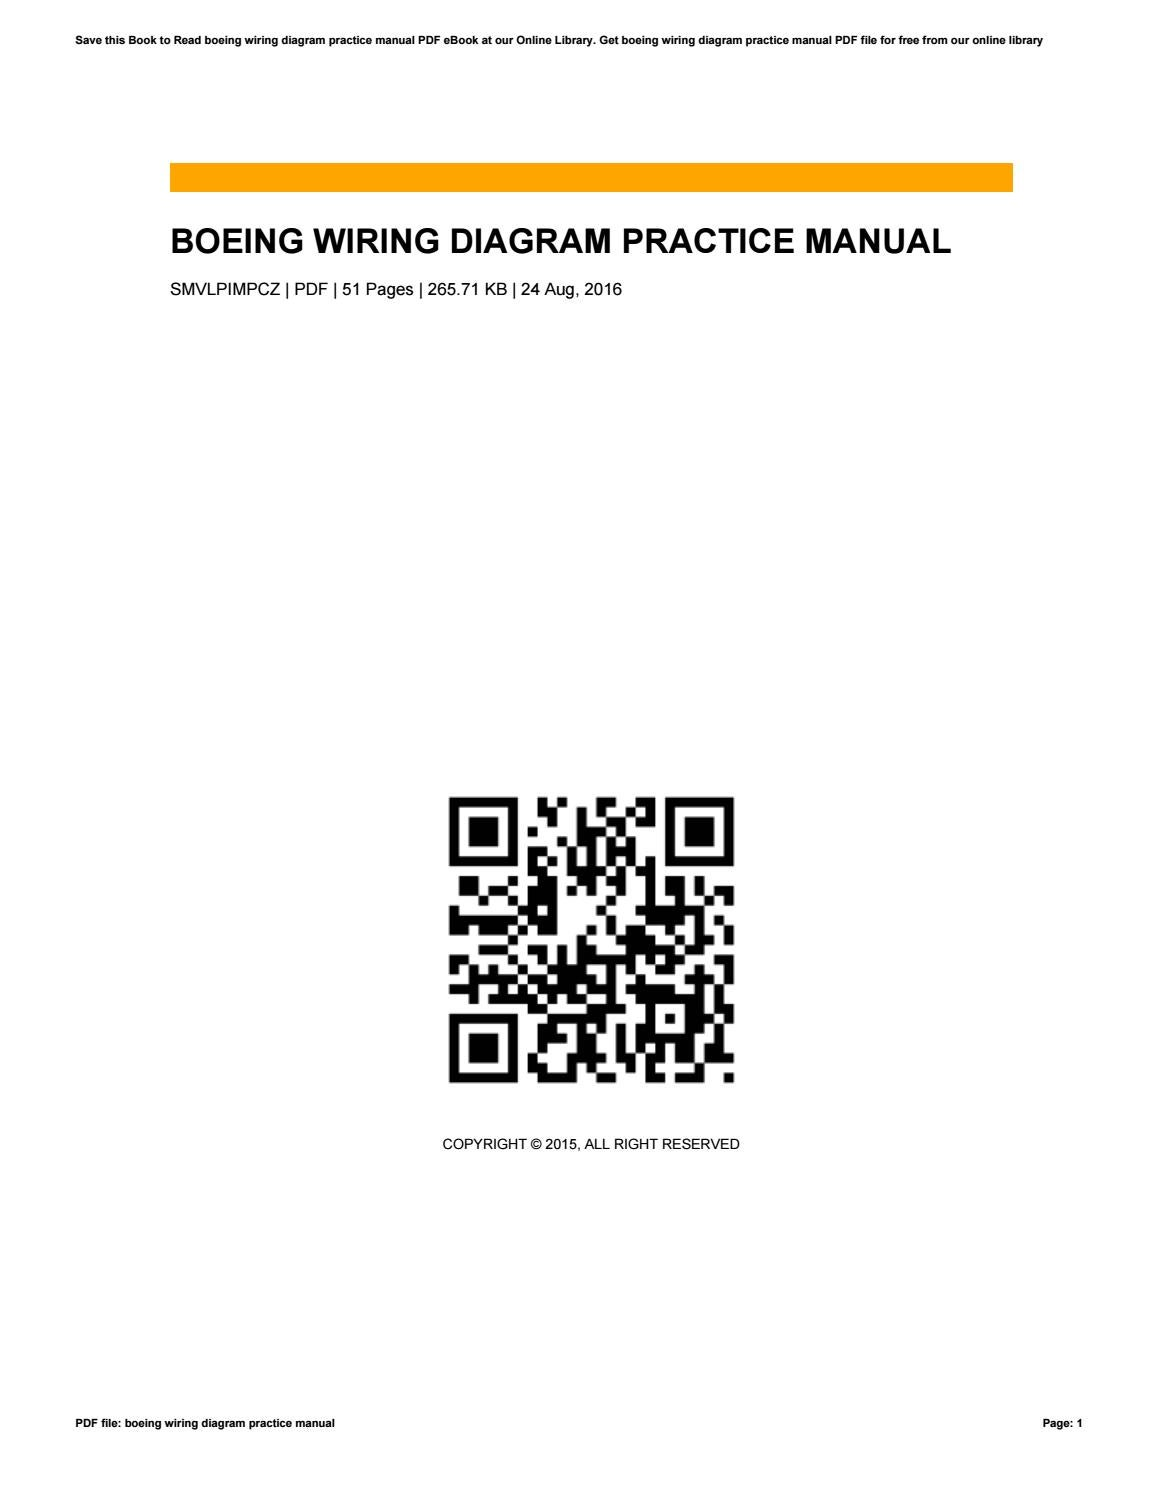 6E4 Boeing Wiring Diagrams Reading | Wiring Resources on boeing engine, boeing fuel tank, boeing dimensions, boeing wiring symbols, boeing assembly, boeing wiring design, boeing exploded view, boeing antenna,